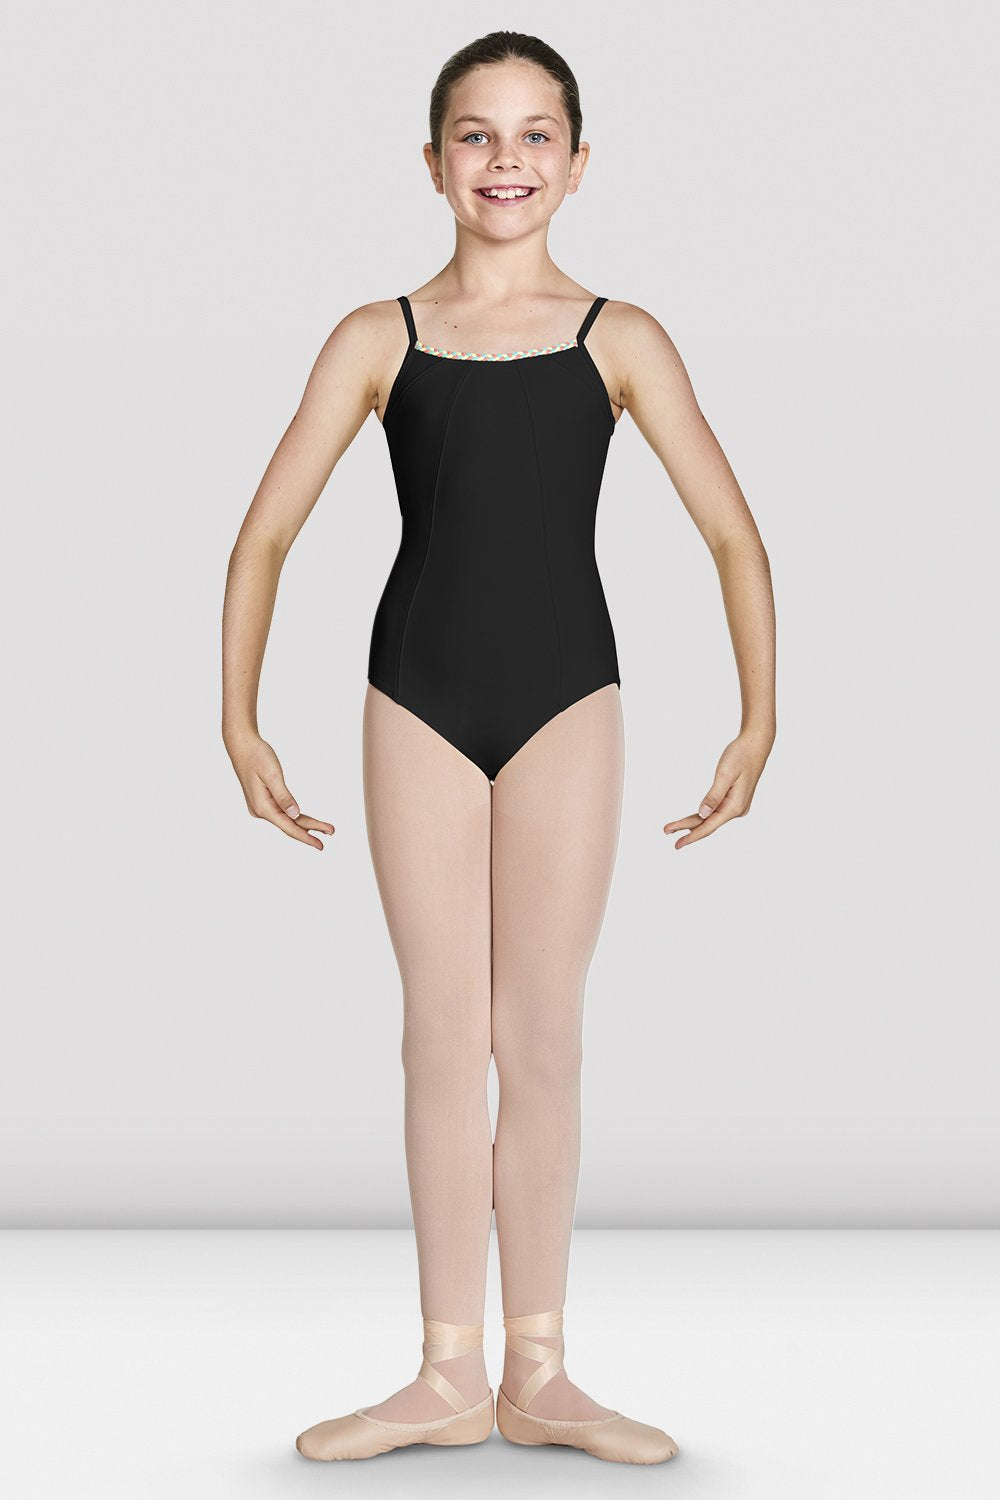 Girls Lucille Cut Out Back Camisole Leotard - BLOCH US